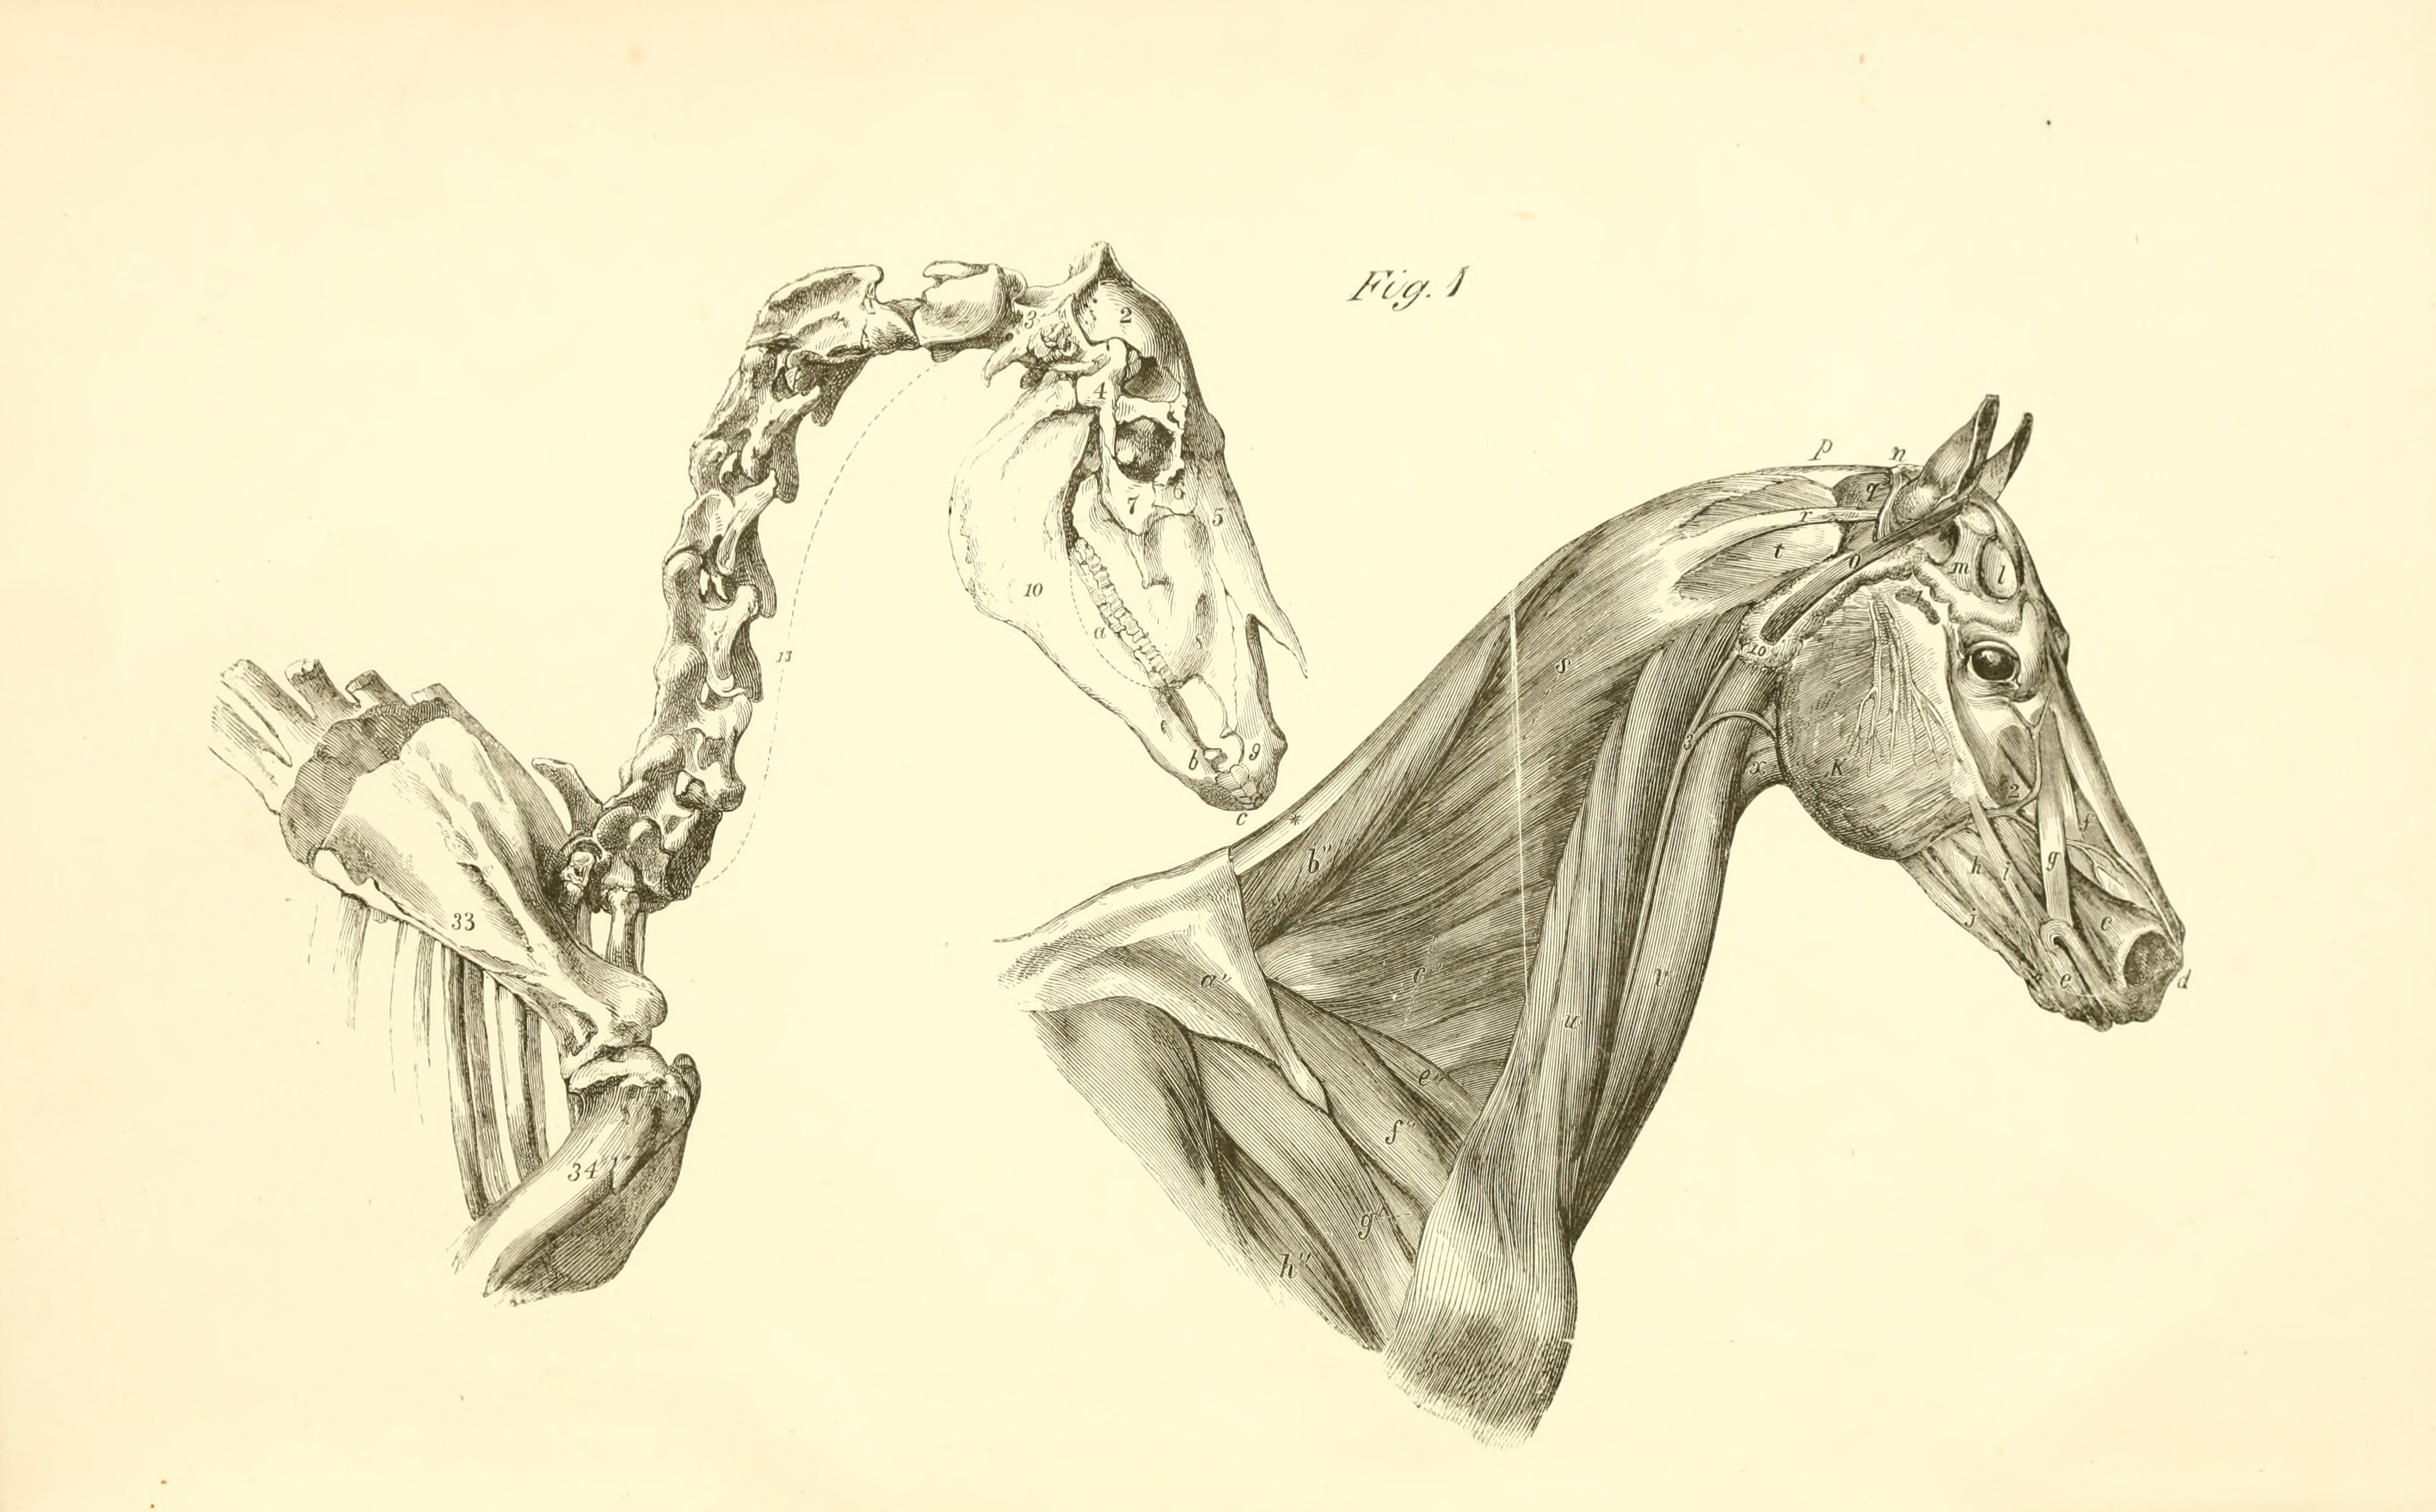 Filethe Anatomy And Physiology Of The Horse Bhl19829878g